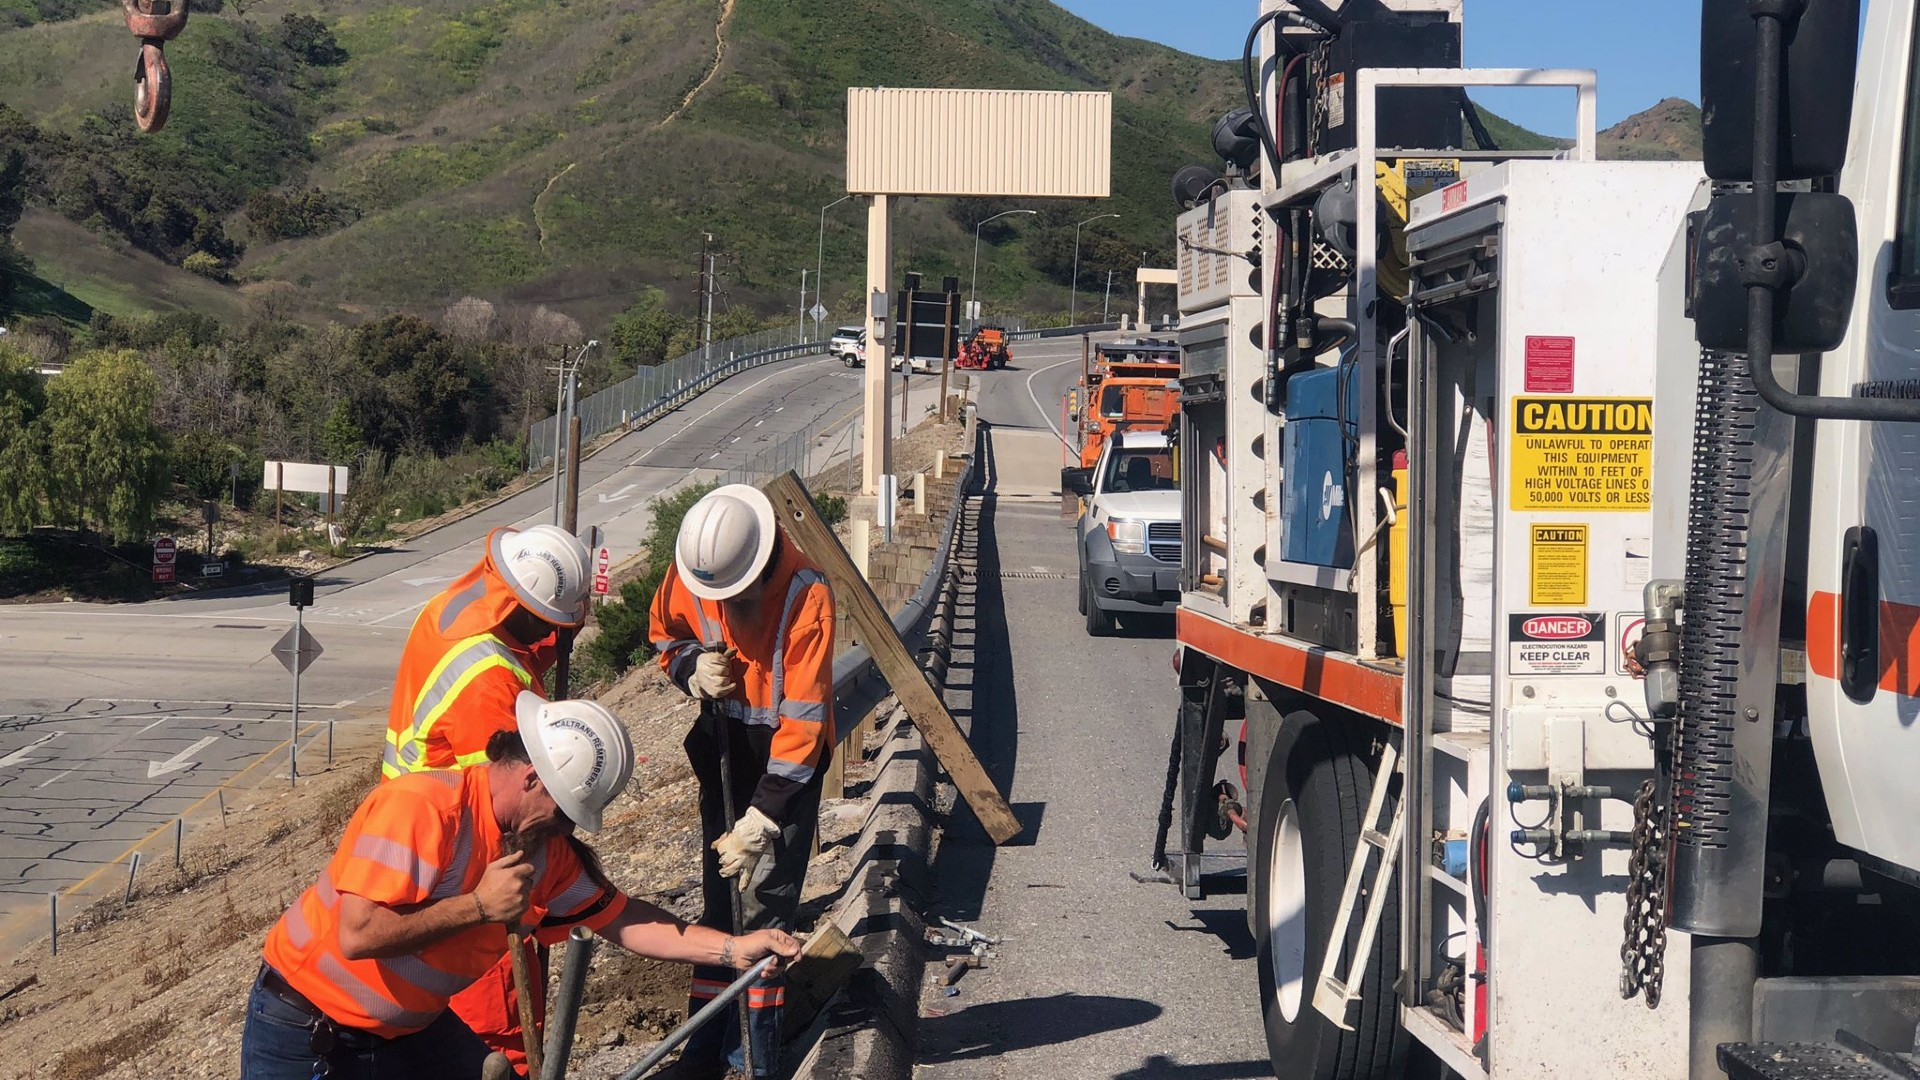 A Caltrans maintenance crew works along the 101 Freeway in Agoura Hills on March 27, 2020. (Caltrans)